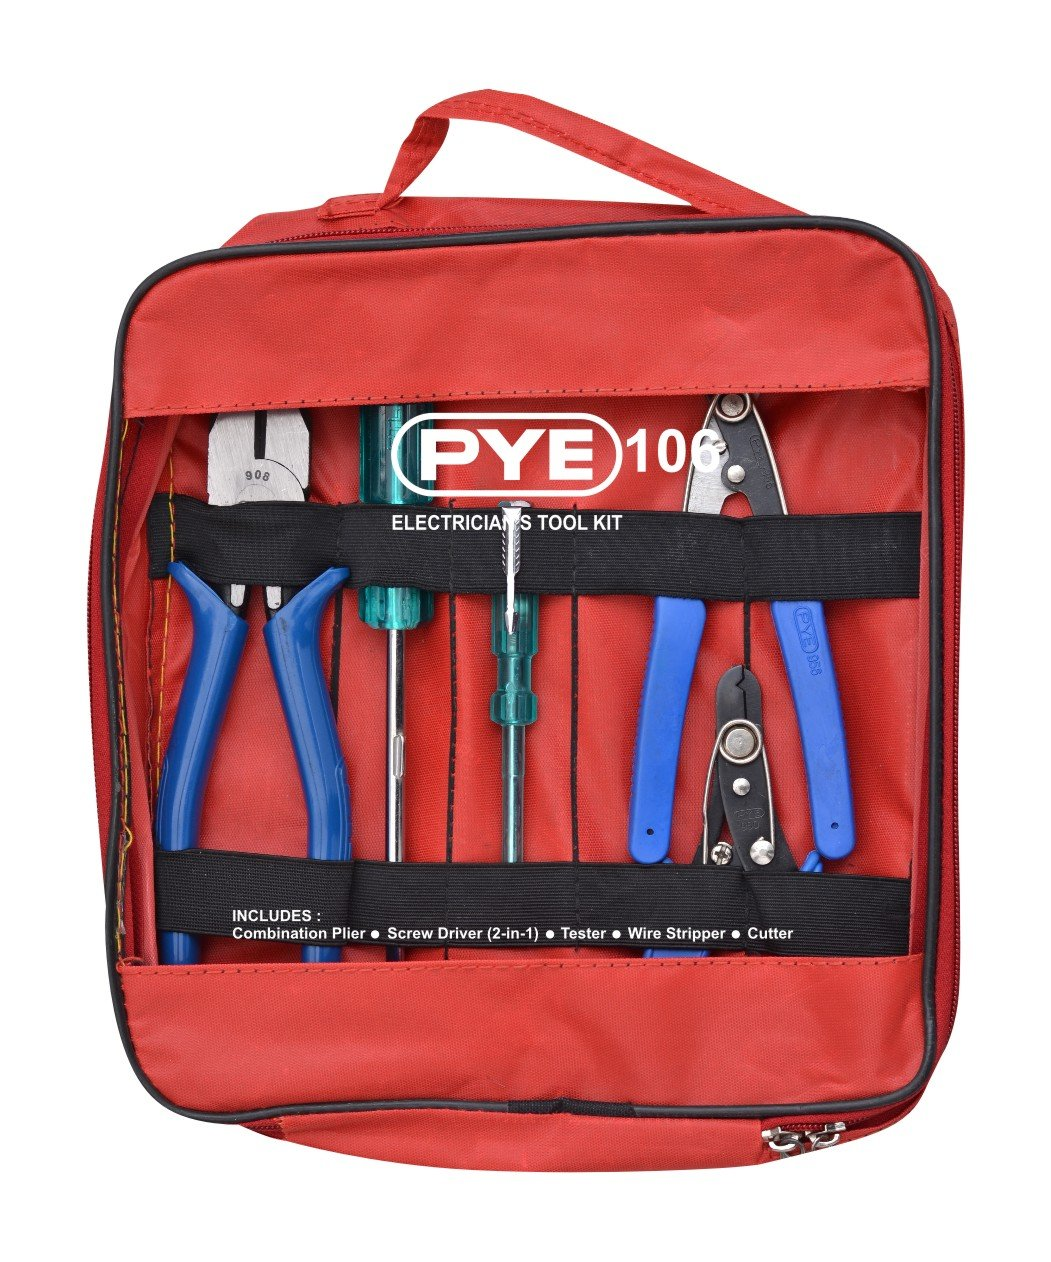 PYE 106 Electrician Tool Kit For Car &Bike (Set of 5)